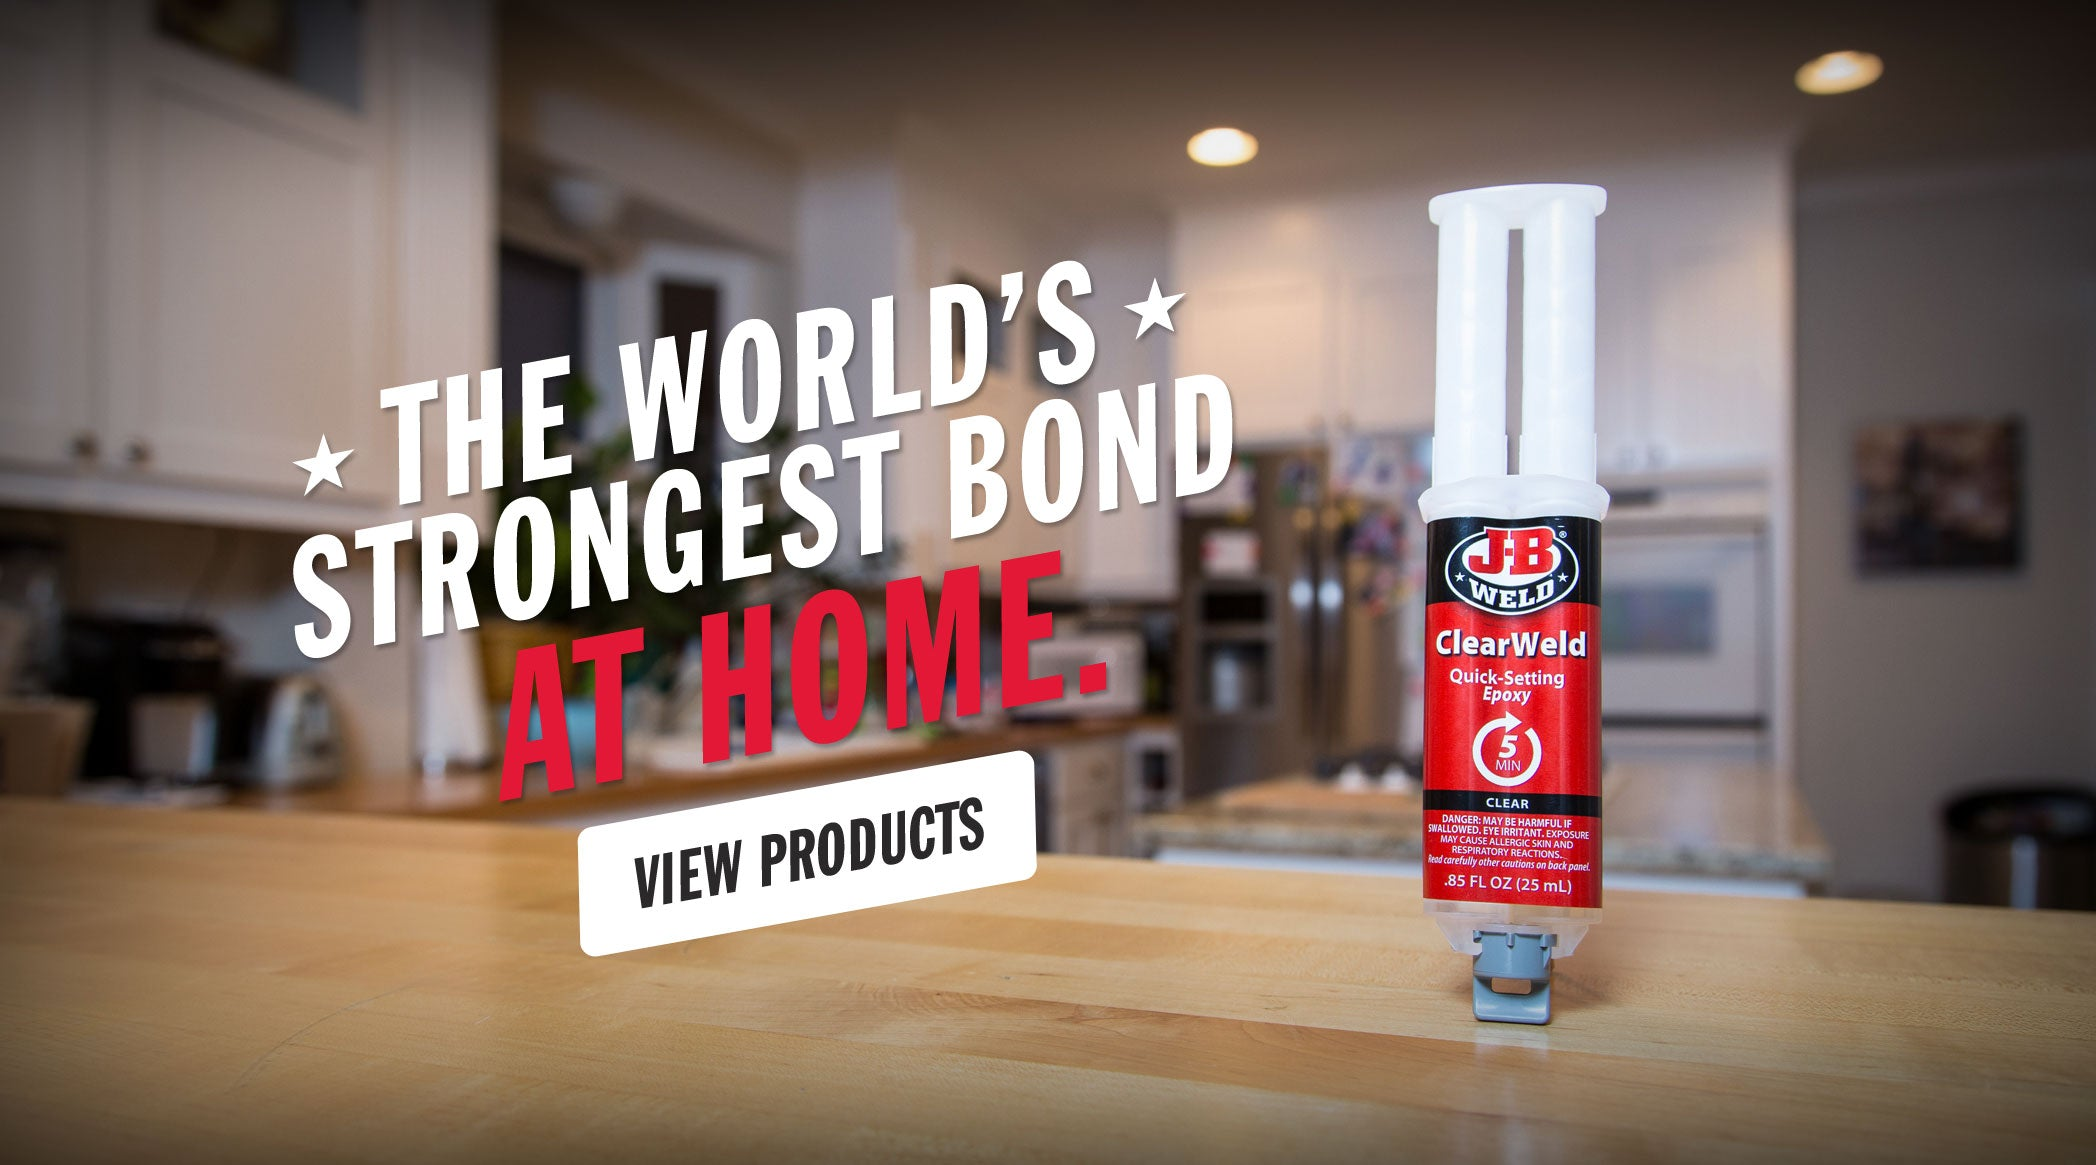 The World's Strongest Bond At Home